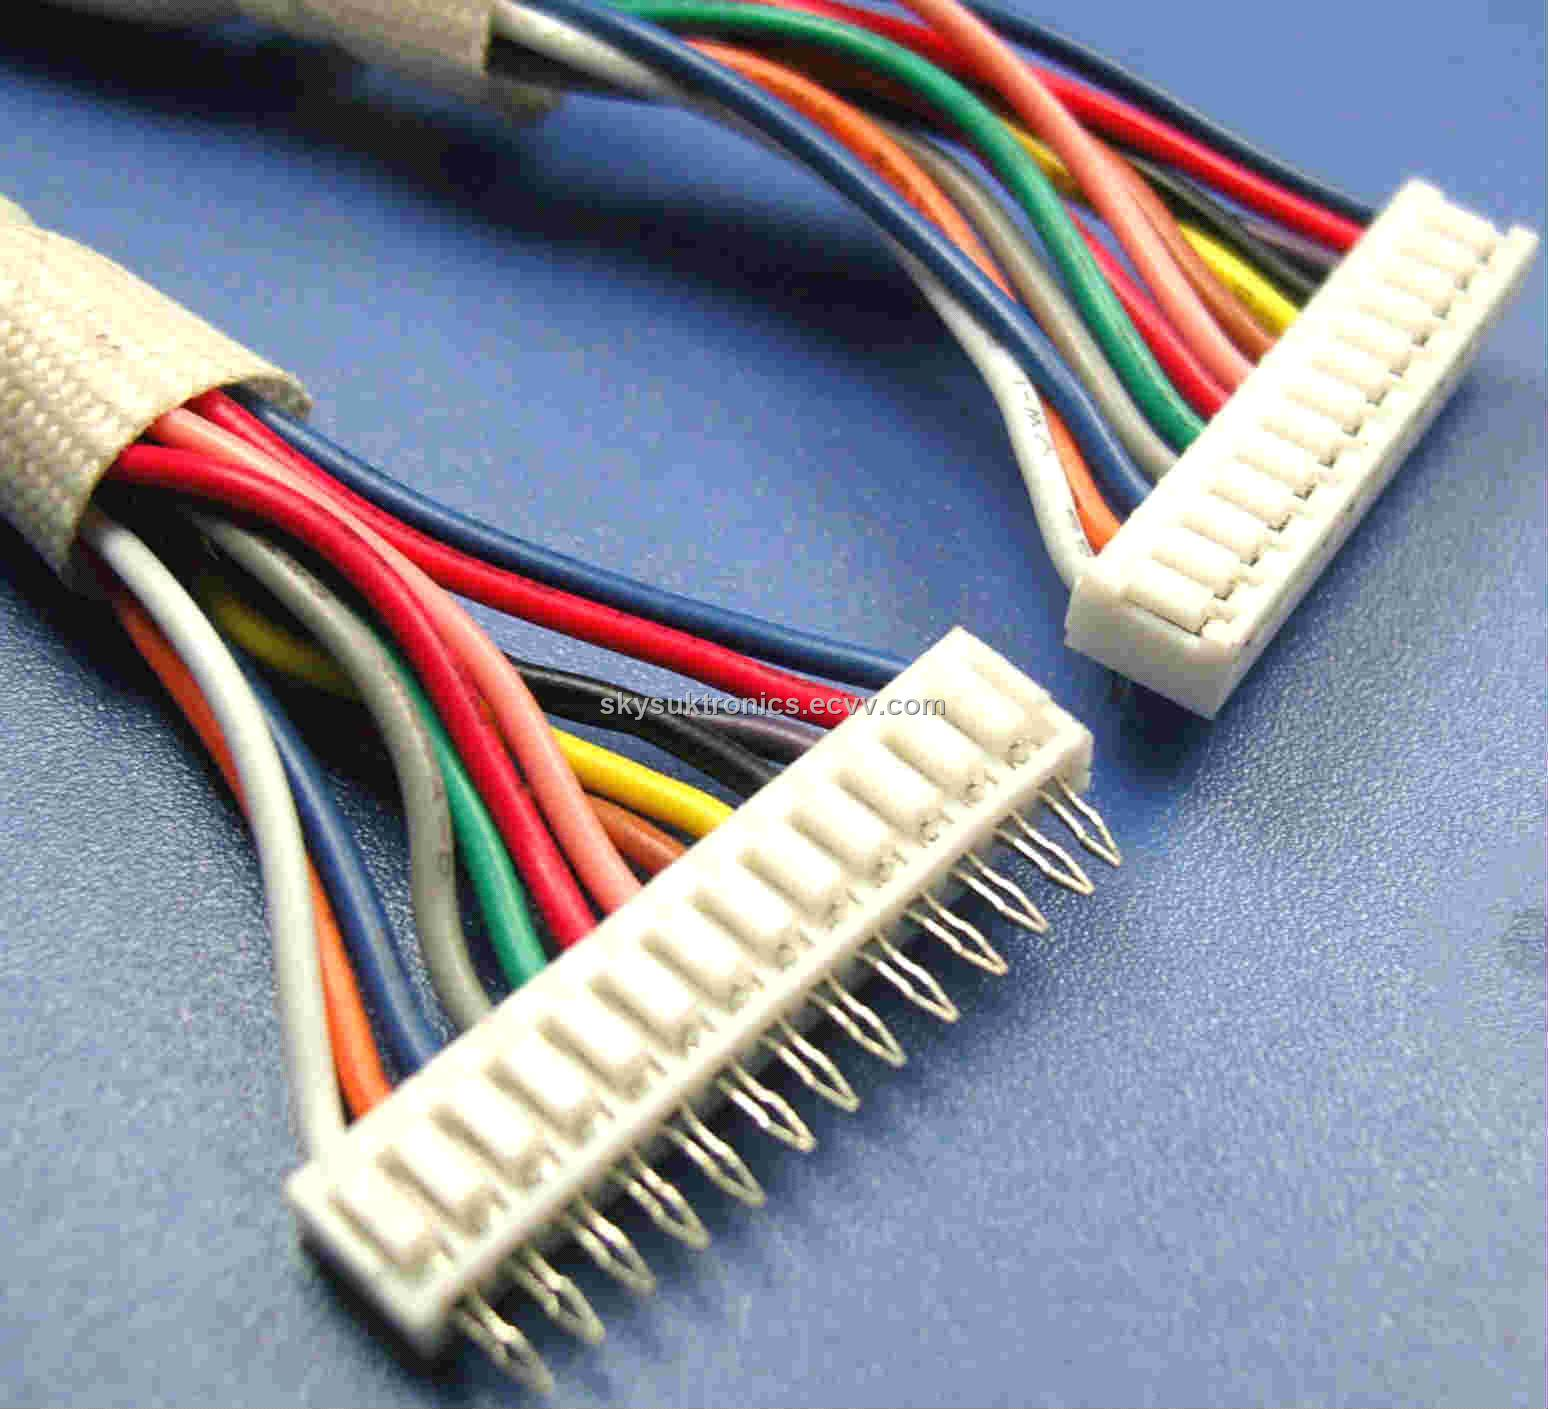 hight resolution of san 2 0 13p vertical angle to san 2 0 13p right angle jst wire harness